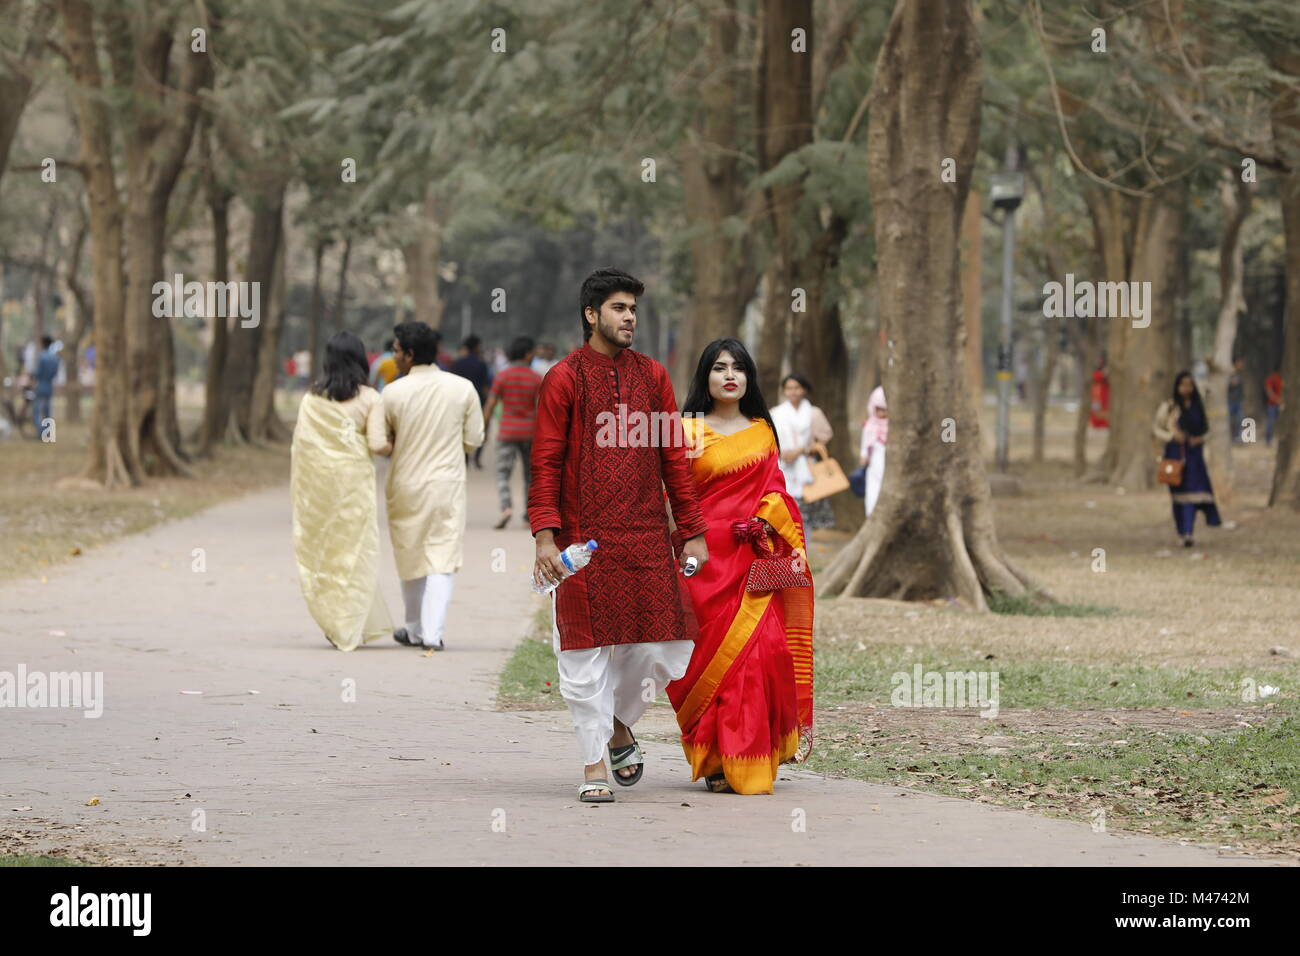 Bangladeshi Couple Photography